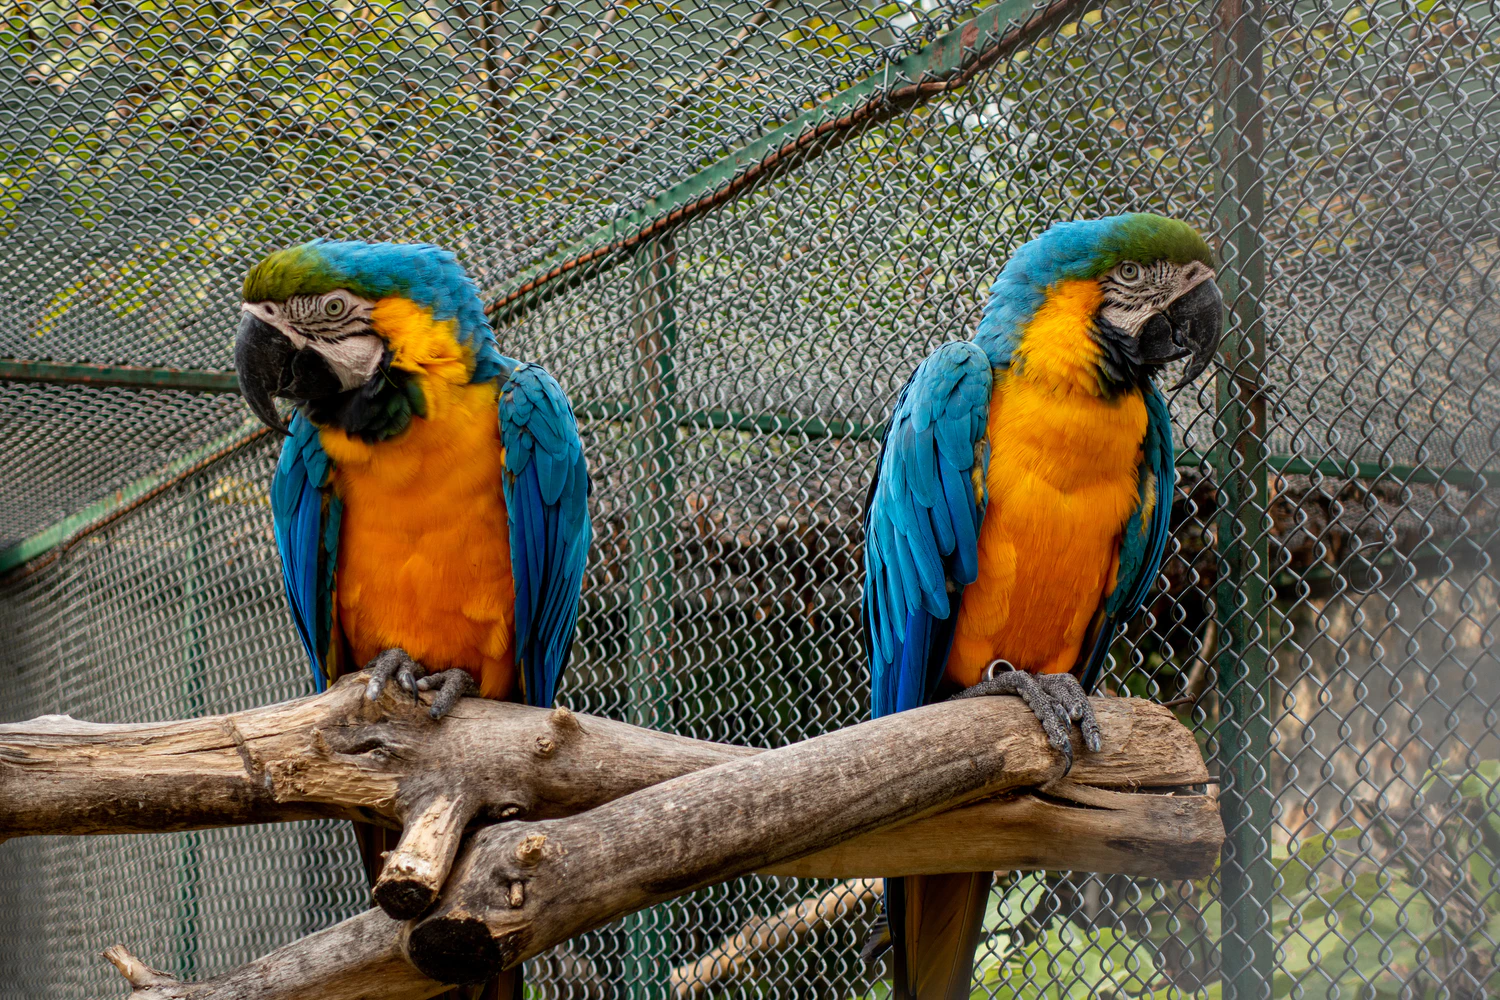 two parrots facing away from each other